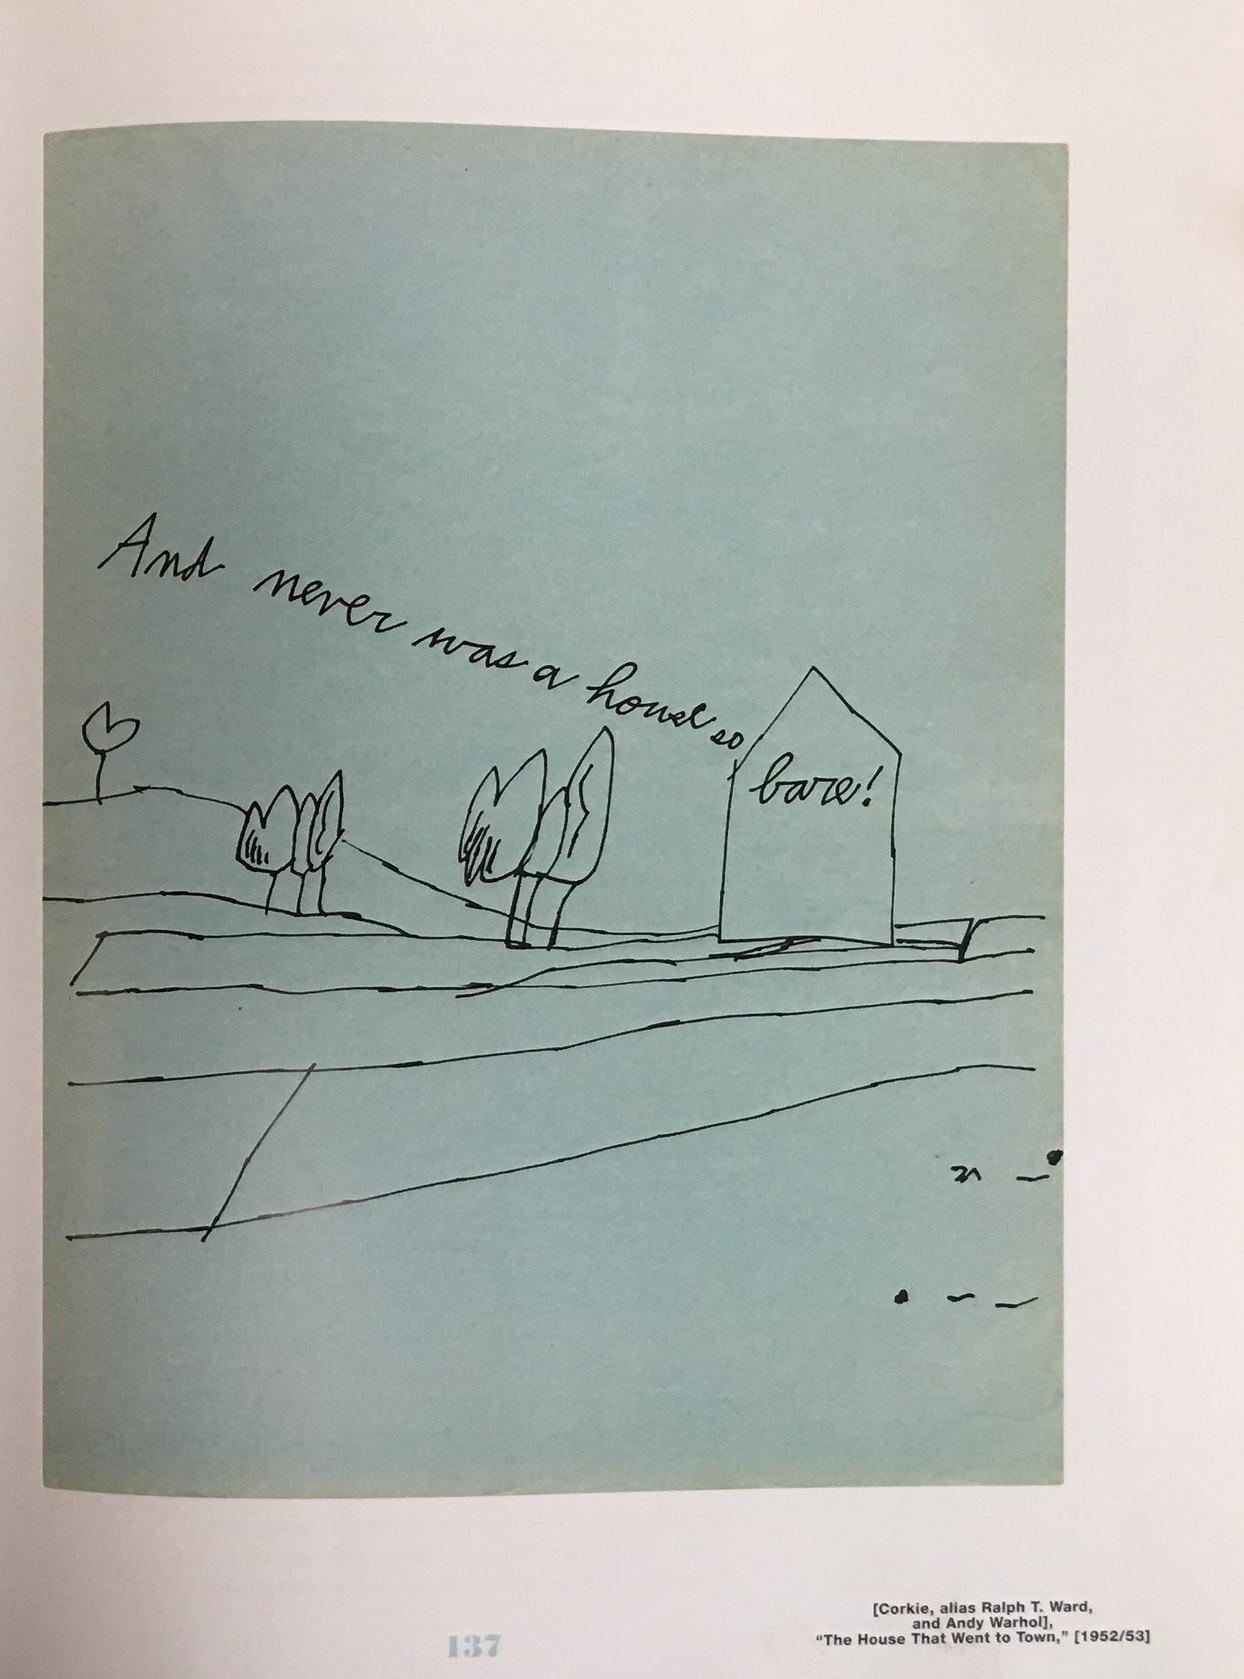 additional images of  The House That Went to Town  by andy warhol